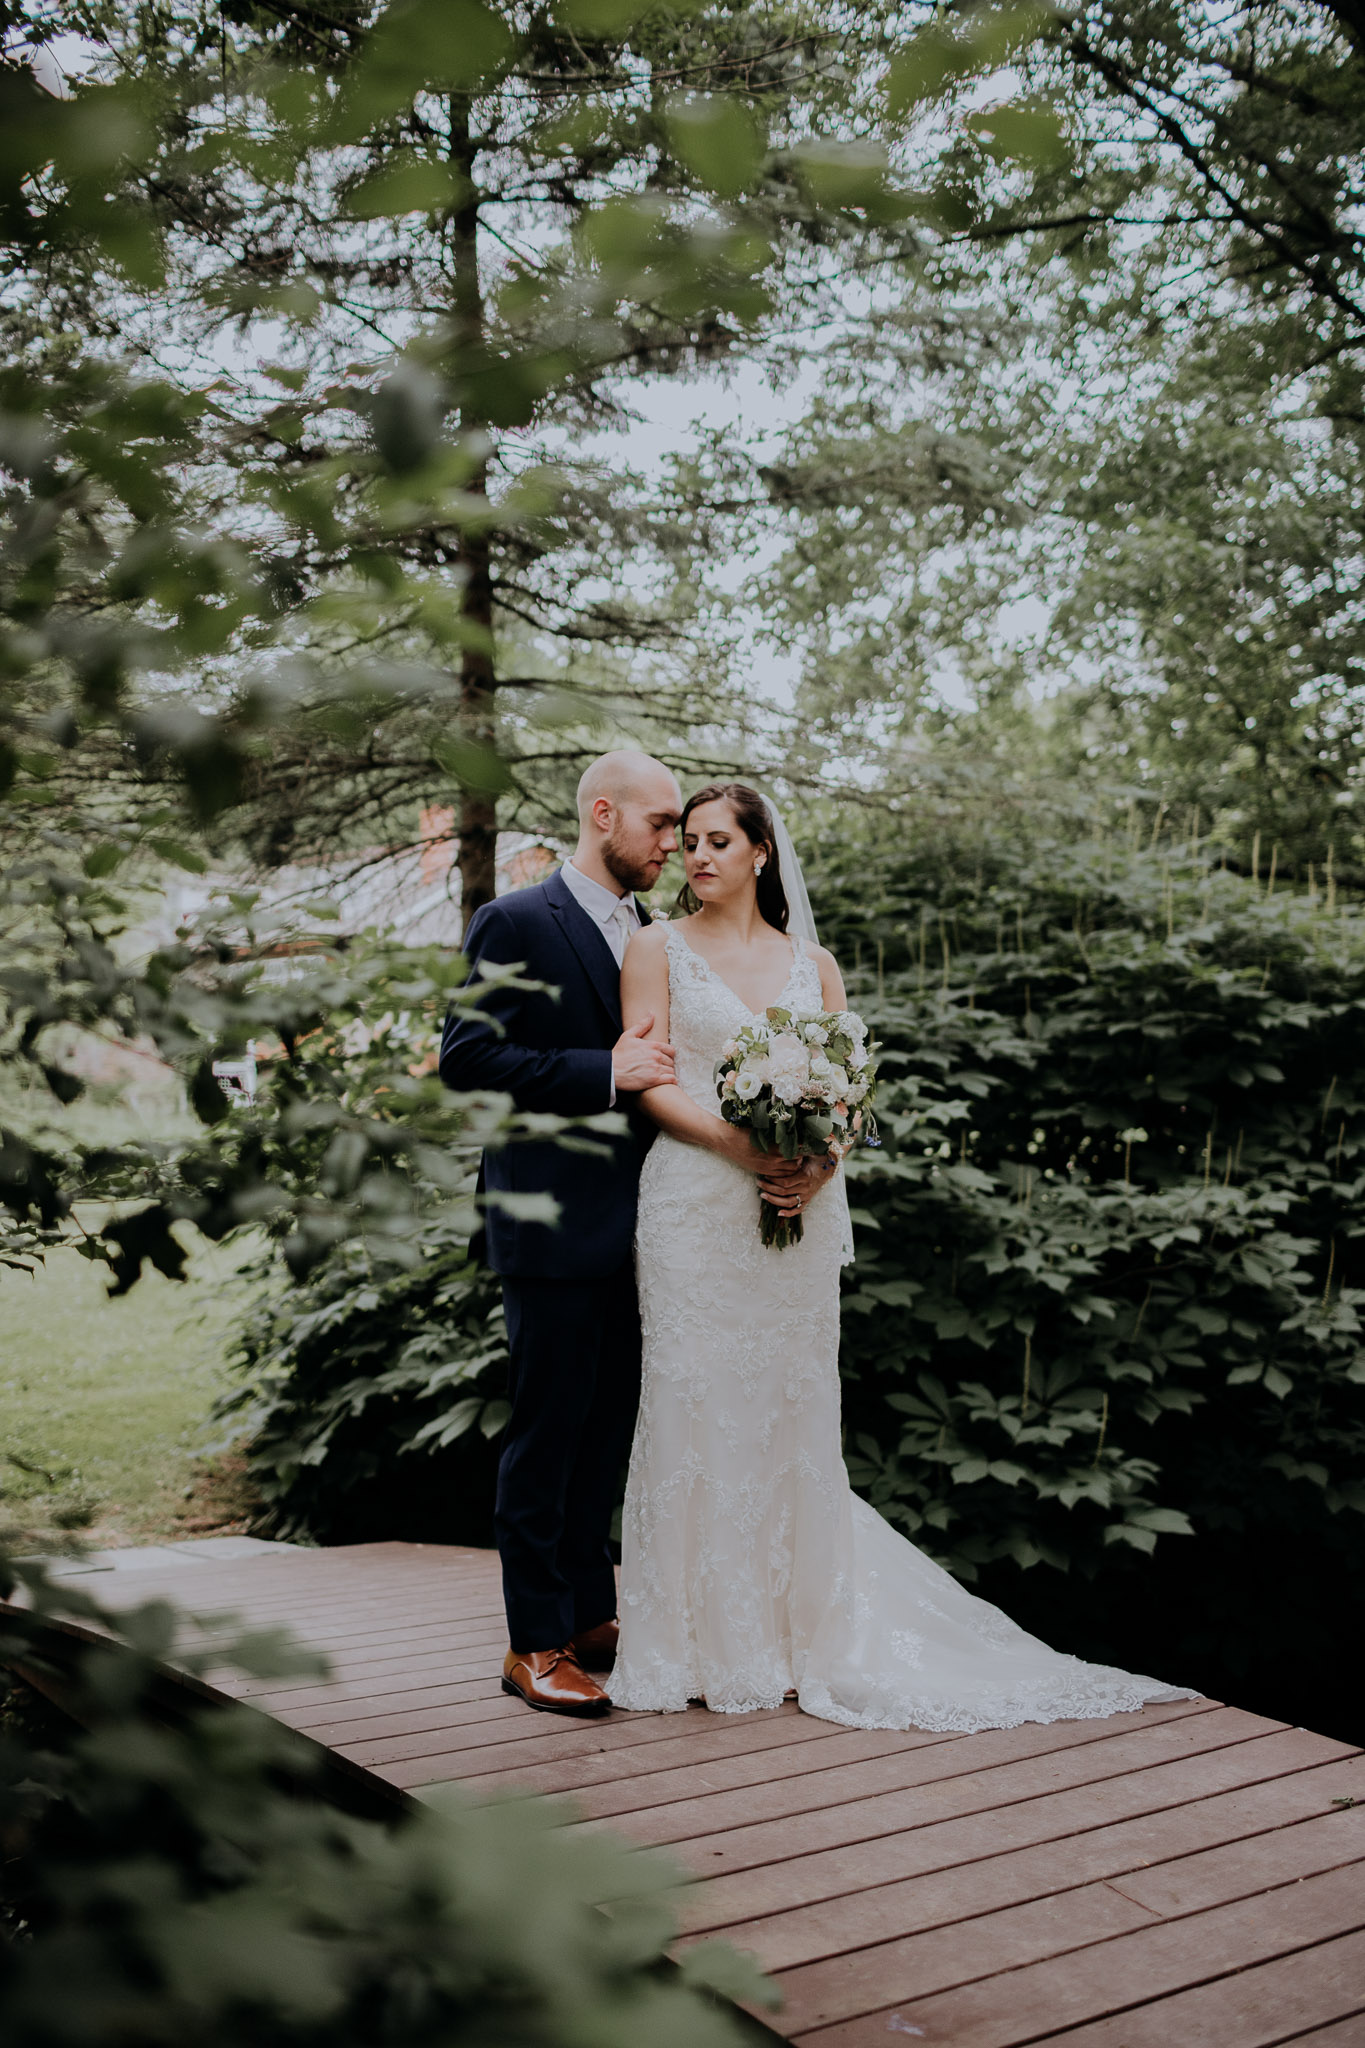 Cambria_Creative_Photography_Historic_Shady_Lane_Wedding_York-9971.jpg